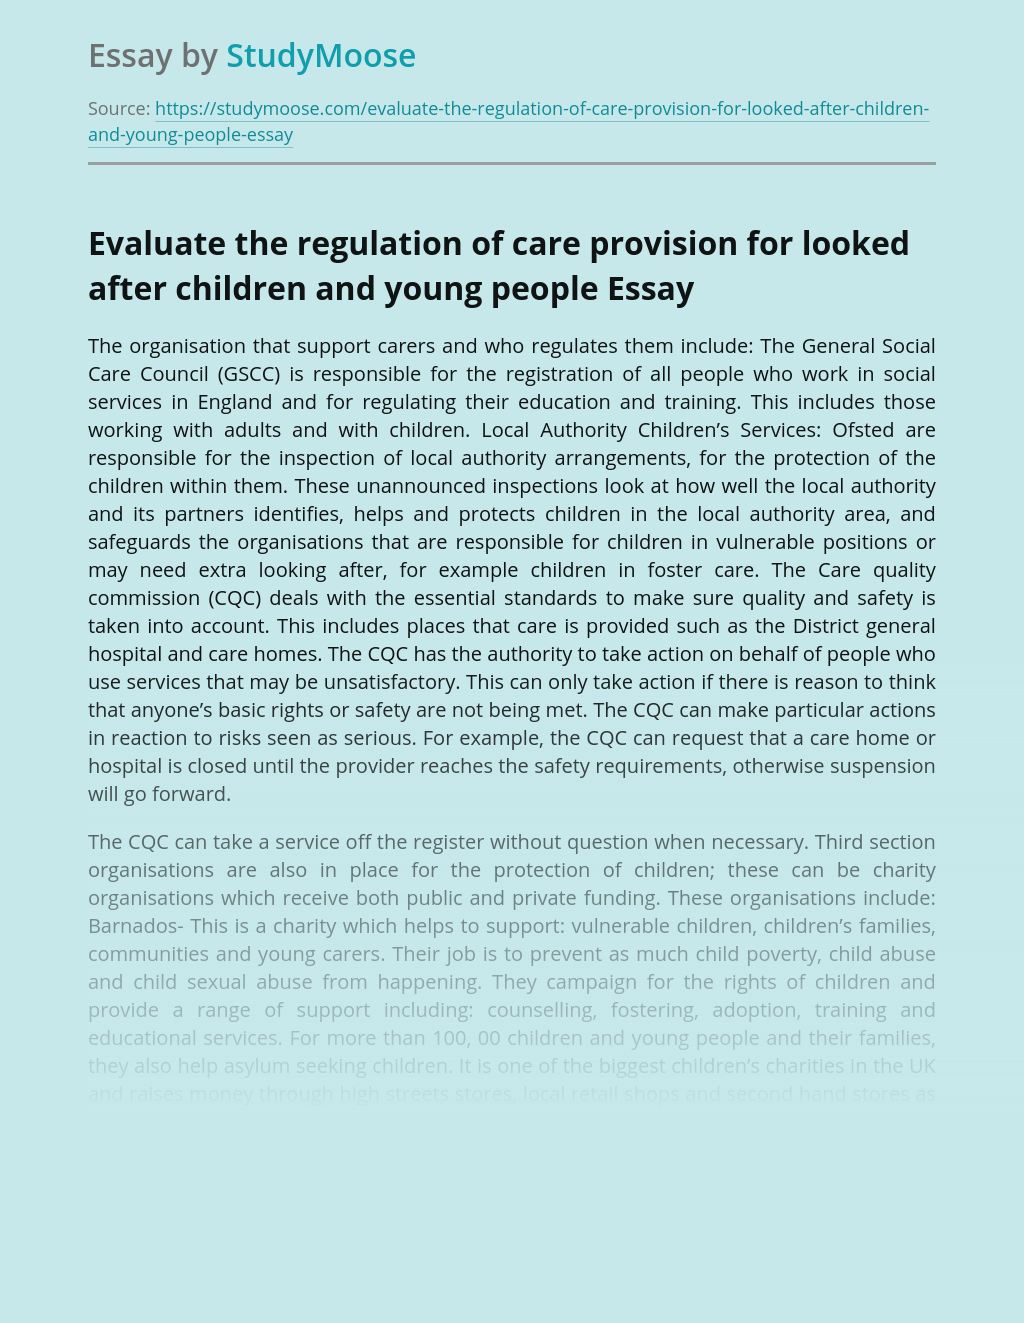 Evaluate the regulation of care provision for looked after children and young people